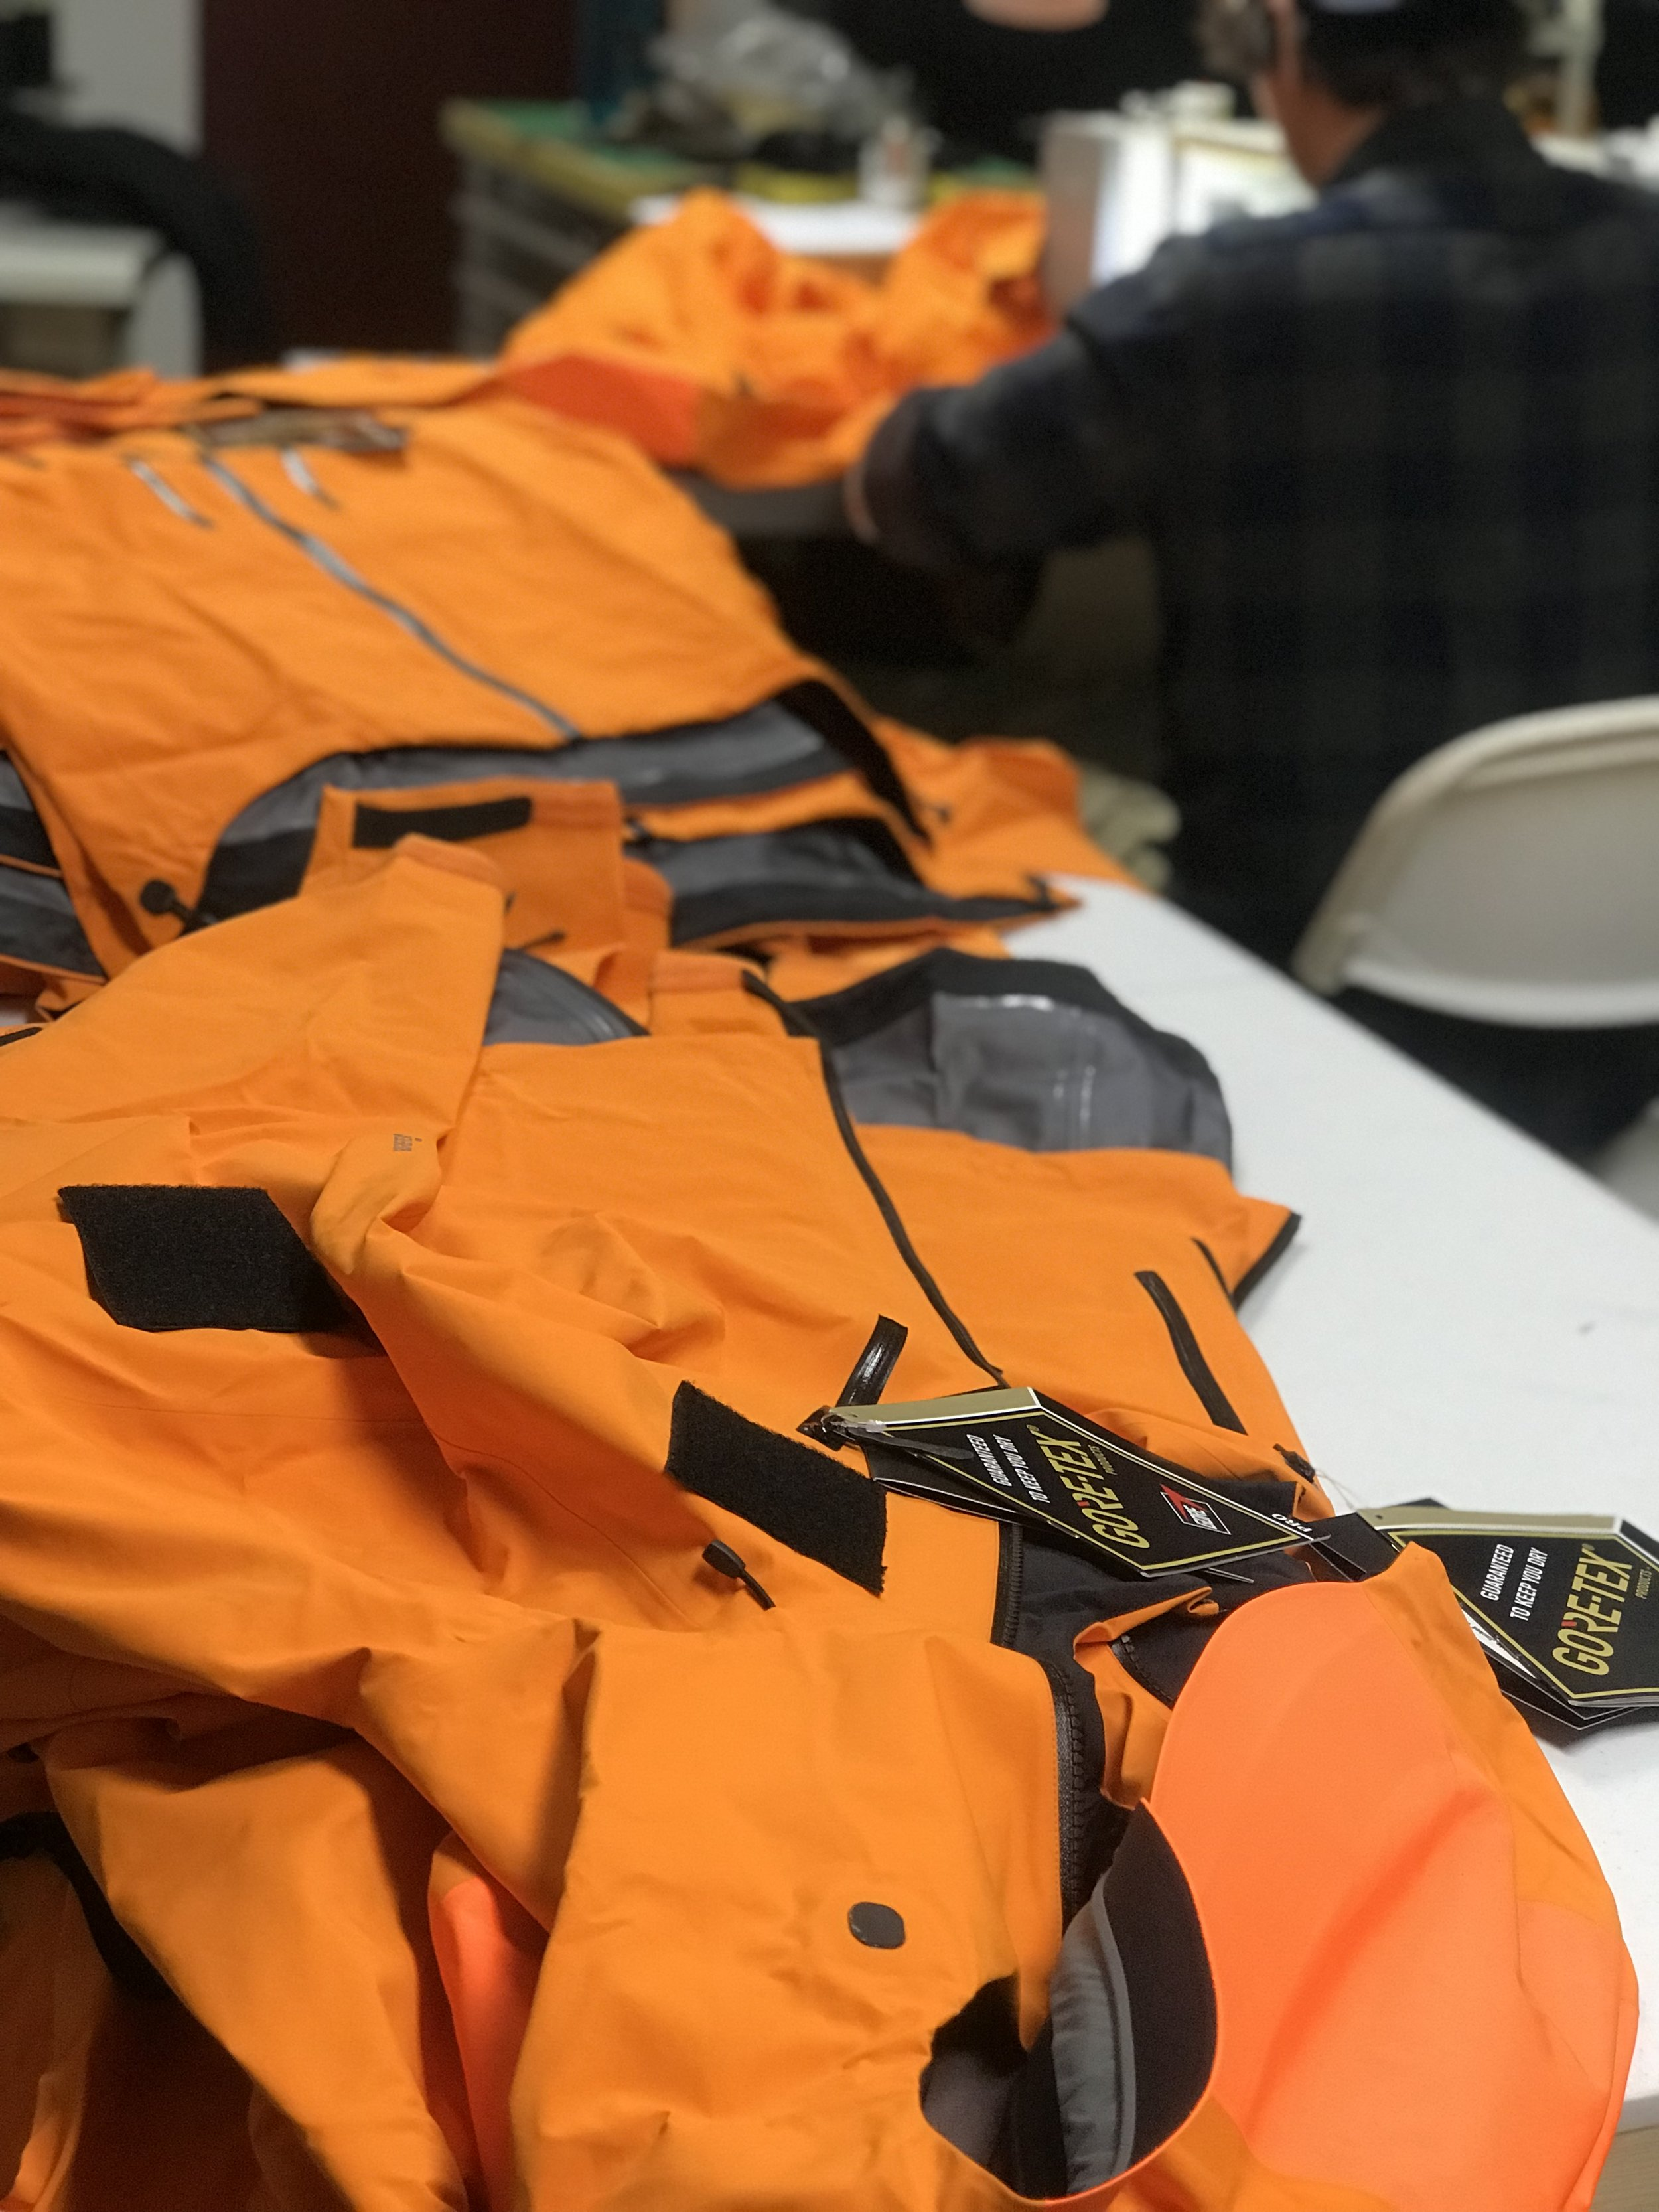 Applying Velcro® patches to Gore-Tex® jackets for Denali NPS Climbing Rangers. Fully seam taped.